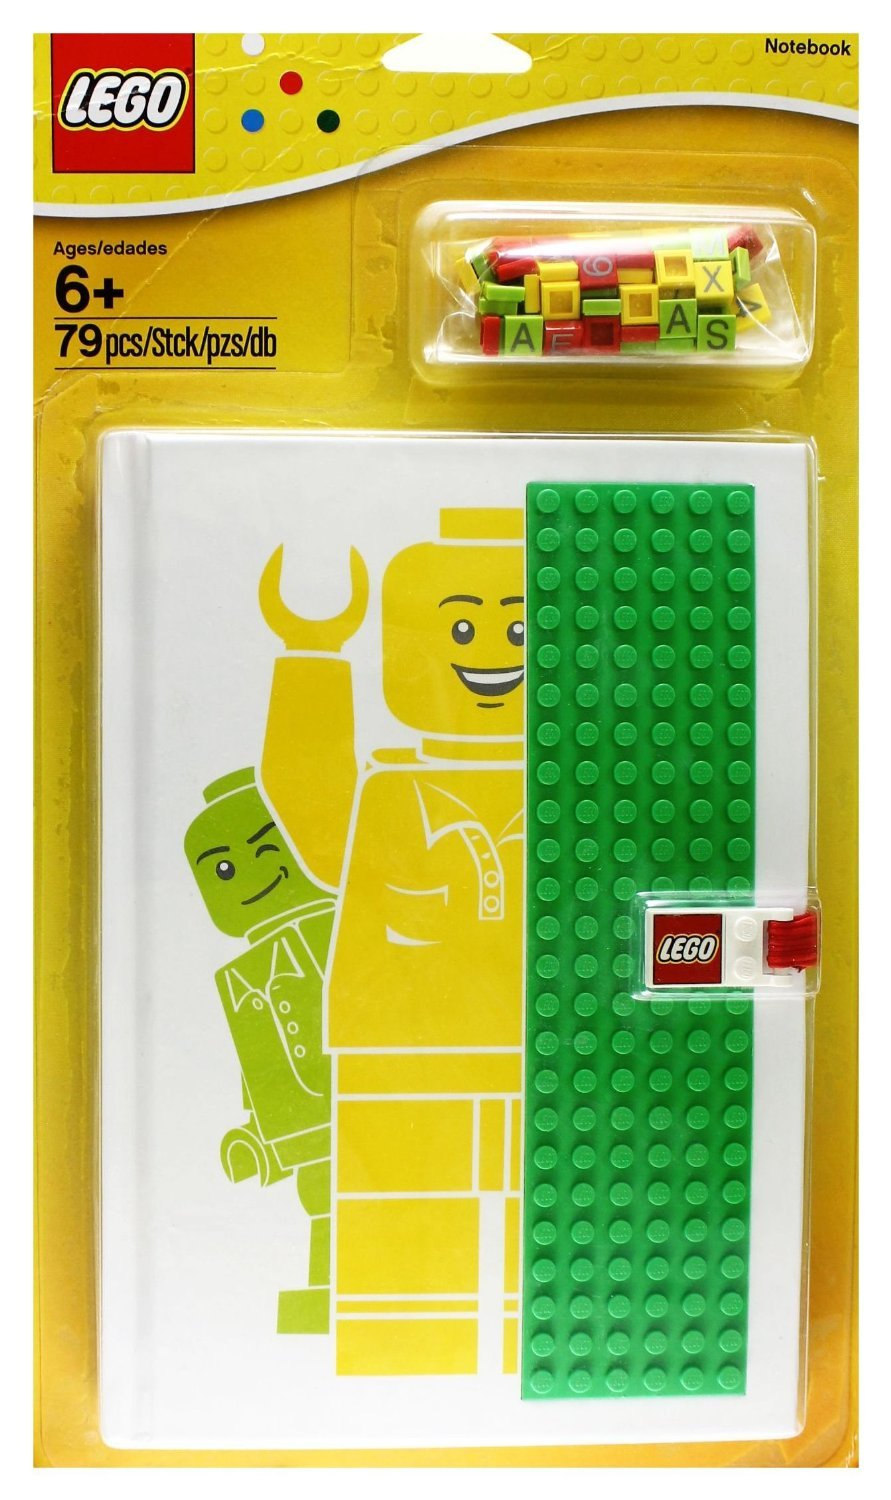 Lego Notebook with Studs EXCLUSIVE